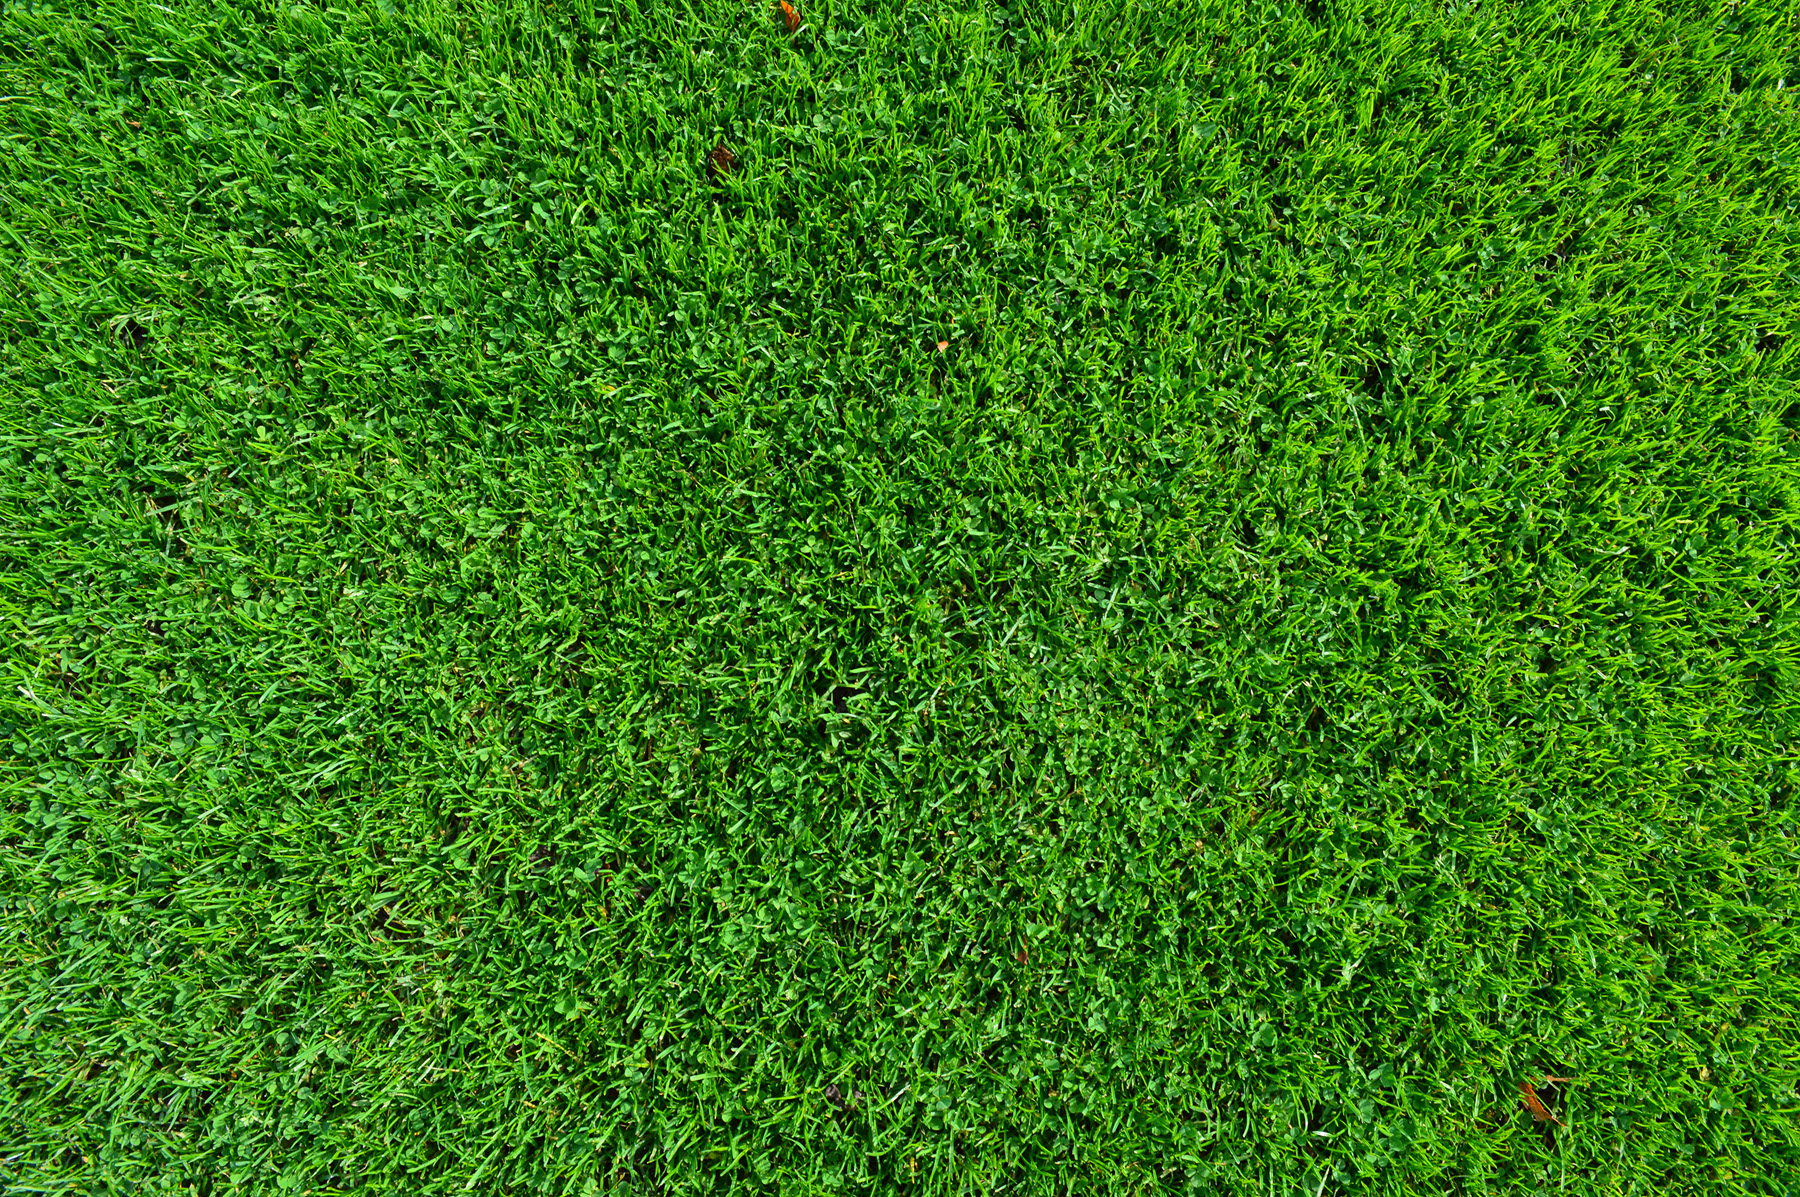 Top view perspective of green grass 51970